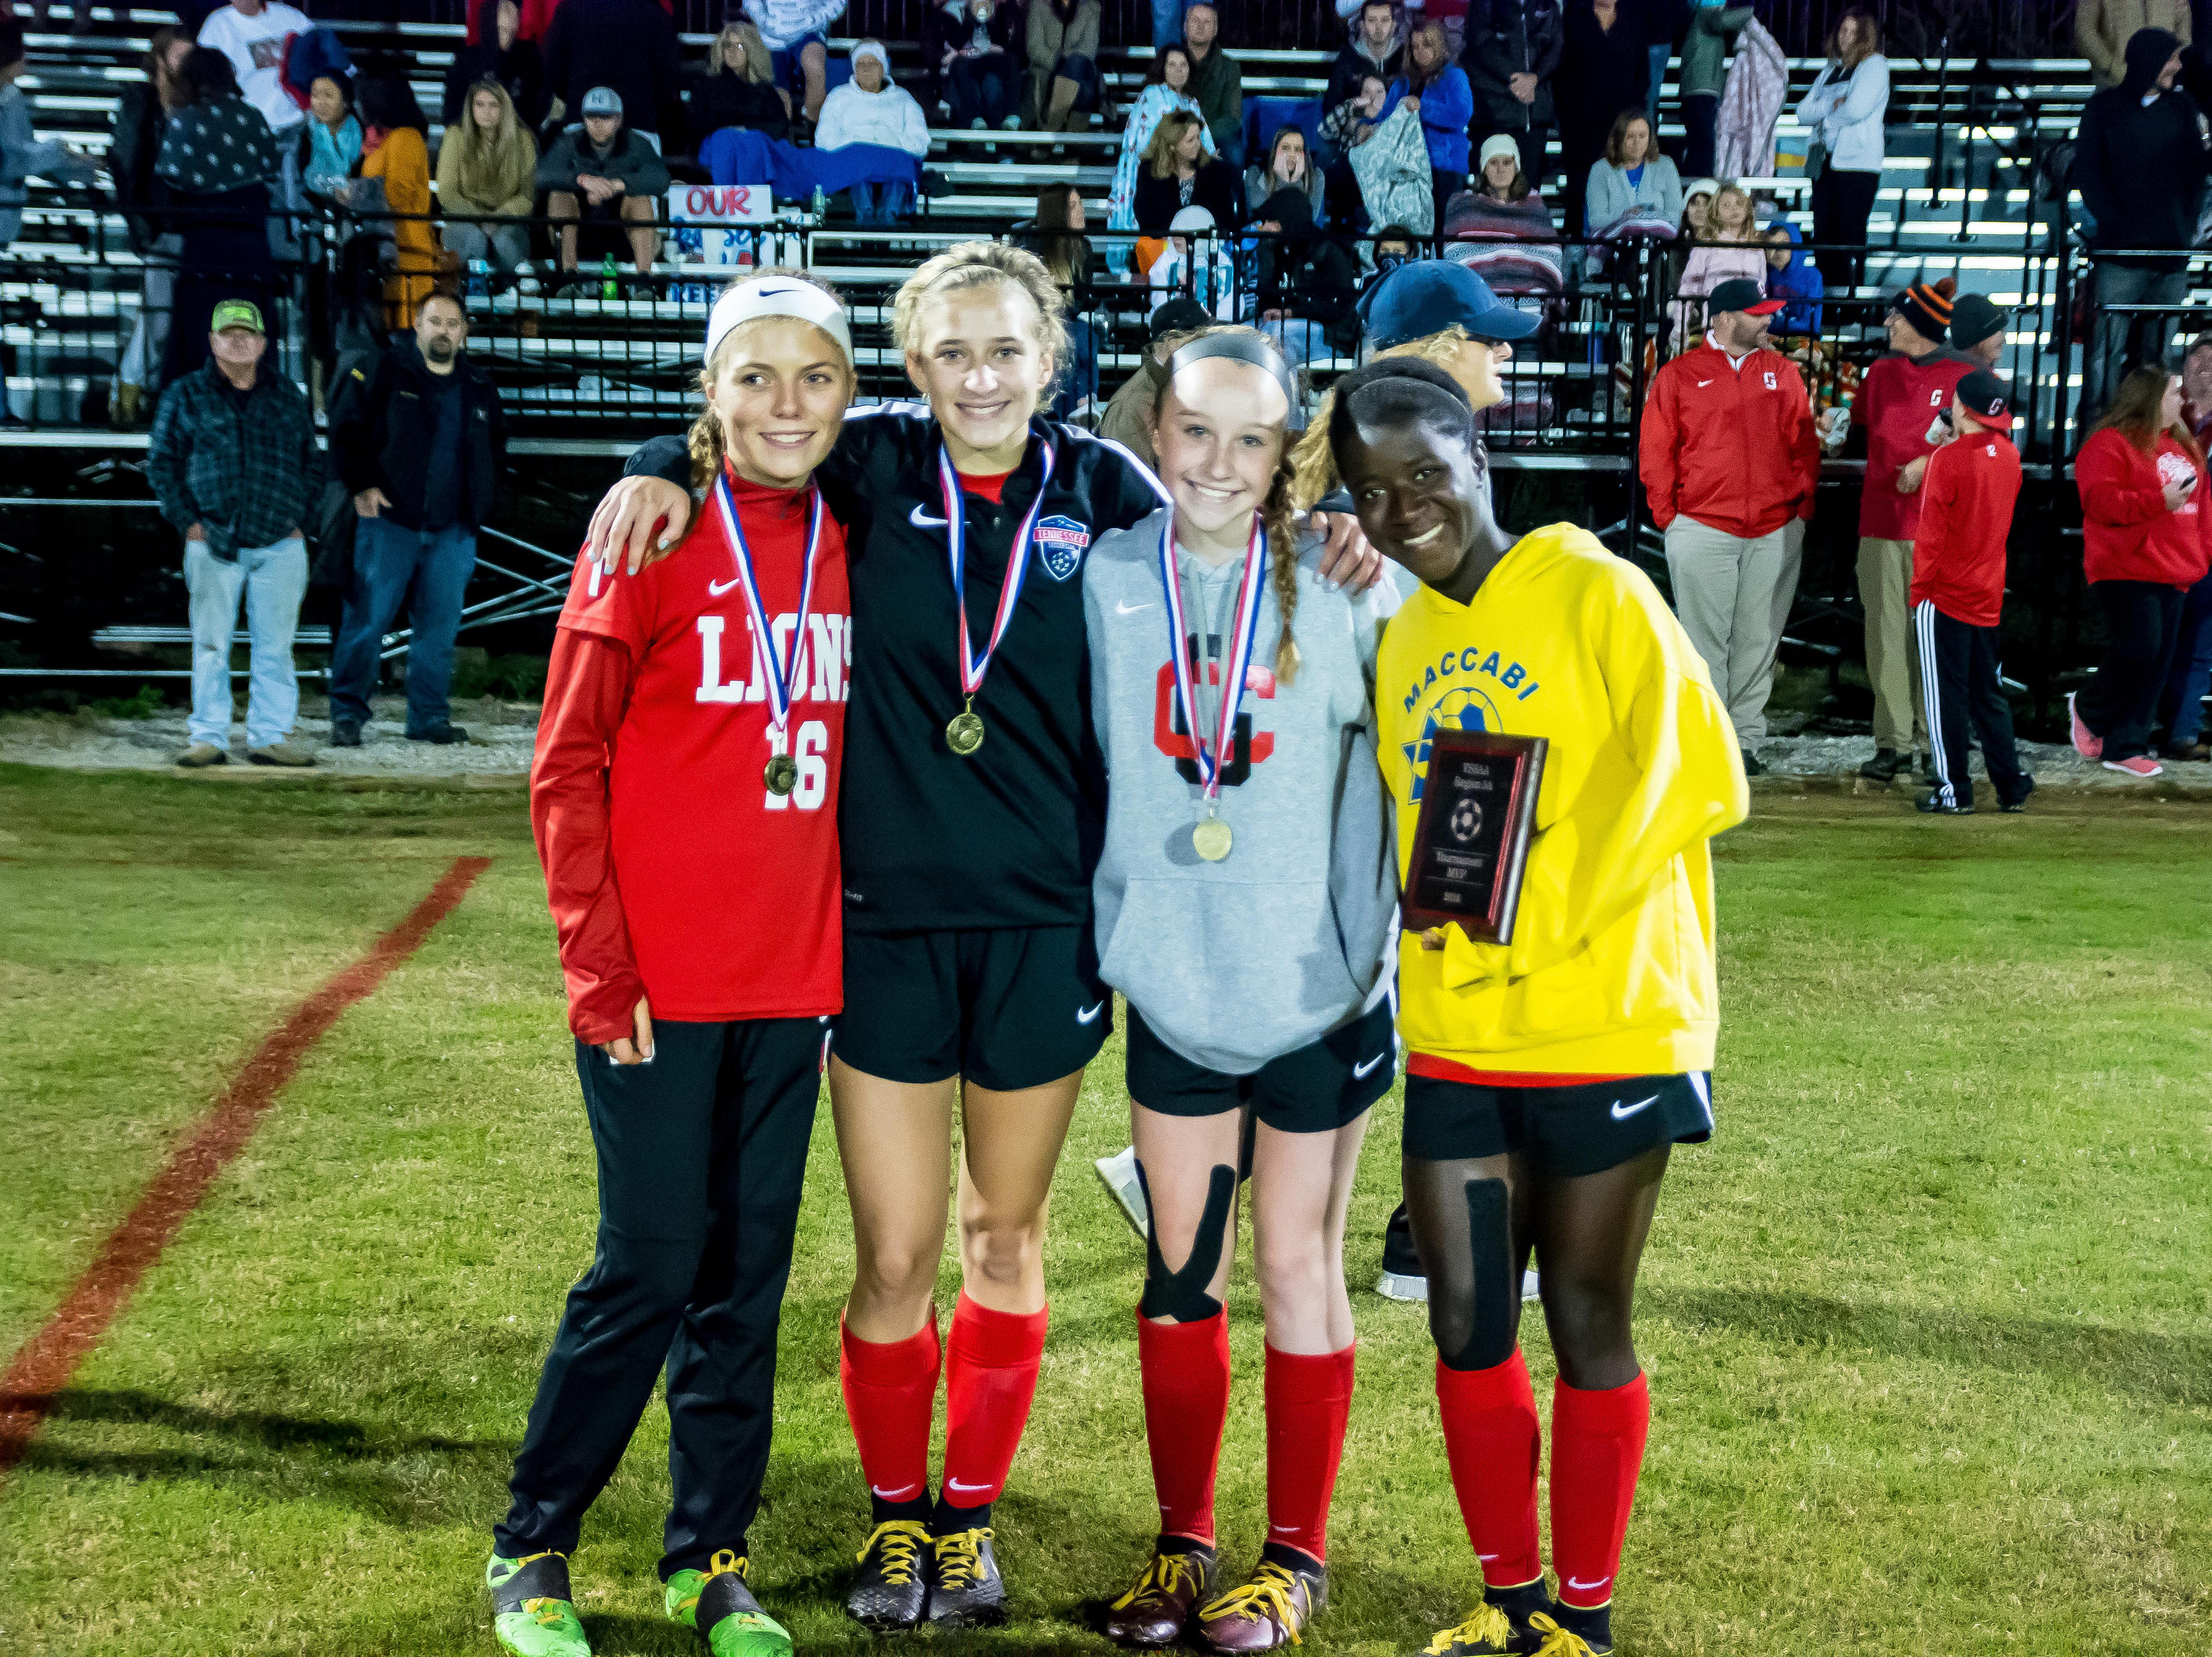 Grace Christian's region tournament award recipients included Hannah Stone, Abby White, Caroline Briley and tournament MVP Gabby Jones.